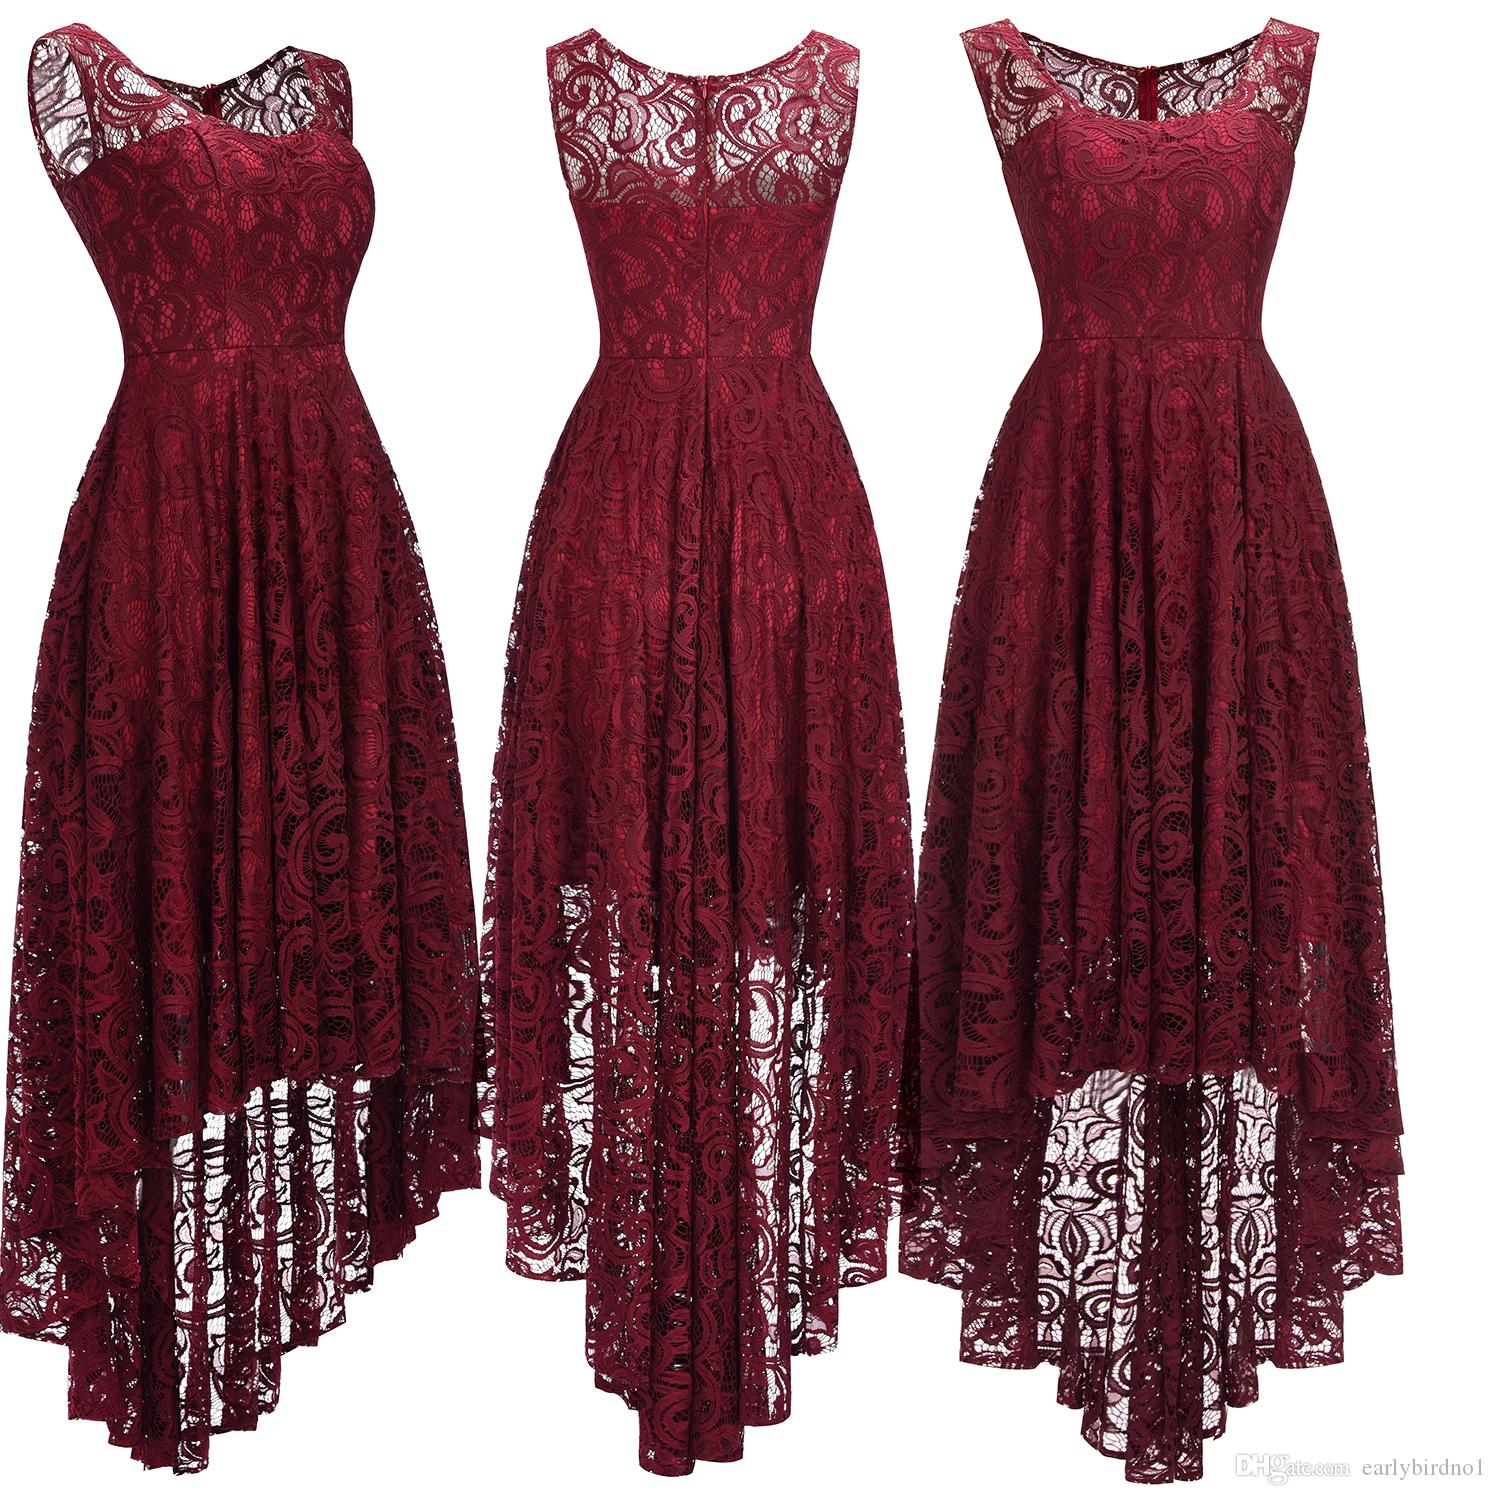 d6b09082e5edd 2018 New Cheap Lace Burgundy Designer Cocktail Christmas Party Dresses High  Low Scoop Neck A Line Formal Occasion Wear CPS1150 Designer Petite Dresses  ...